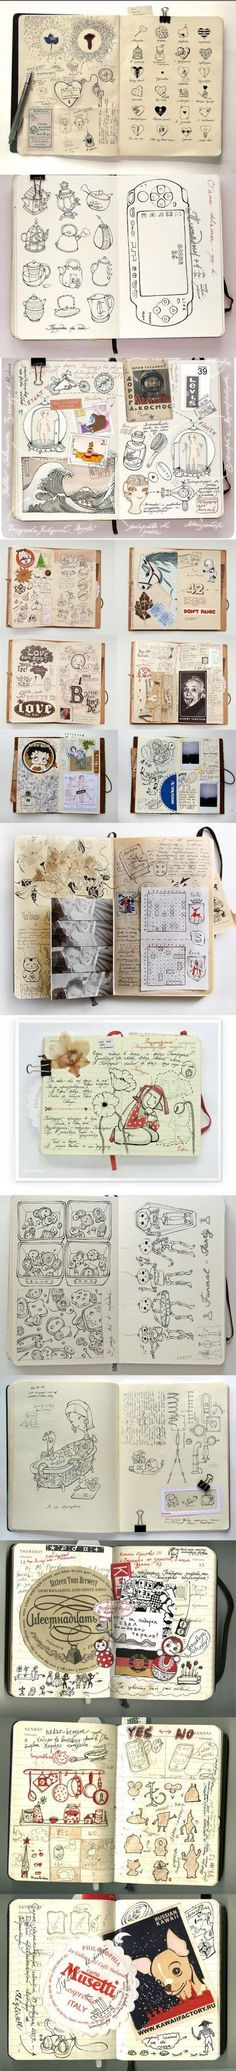 sketchbook / art journal / moleskine / creativity / drawing / scrapbook- I need… Kunstjournal Inspiration, Sketchbook Inspiration, Sketchbook Ideas, Arte Sketchbook, Moleskine Sketchbook, Fashion Sketchbook, Buch Design, Doodles, Visual Diary